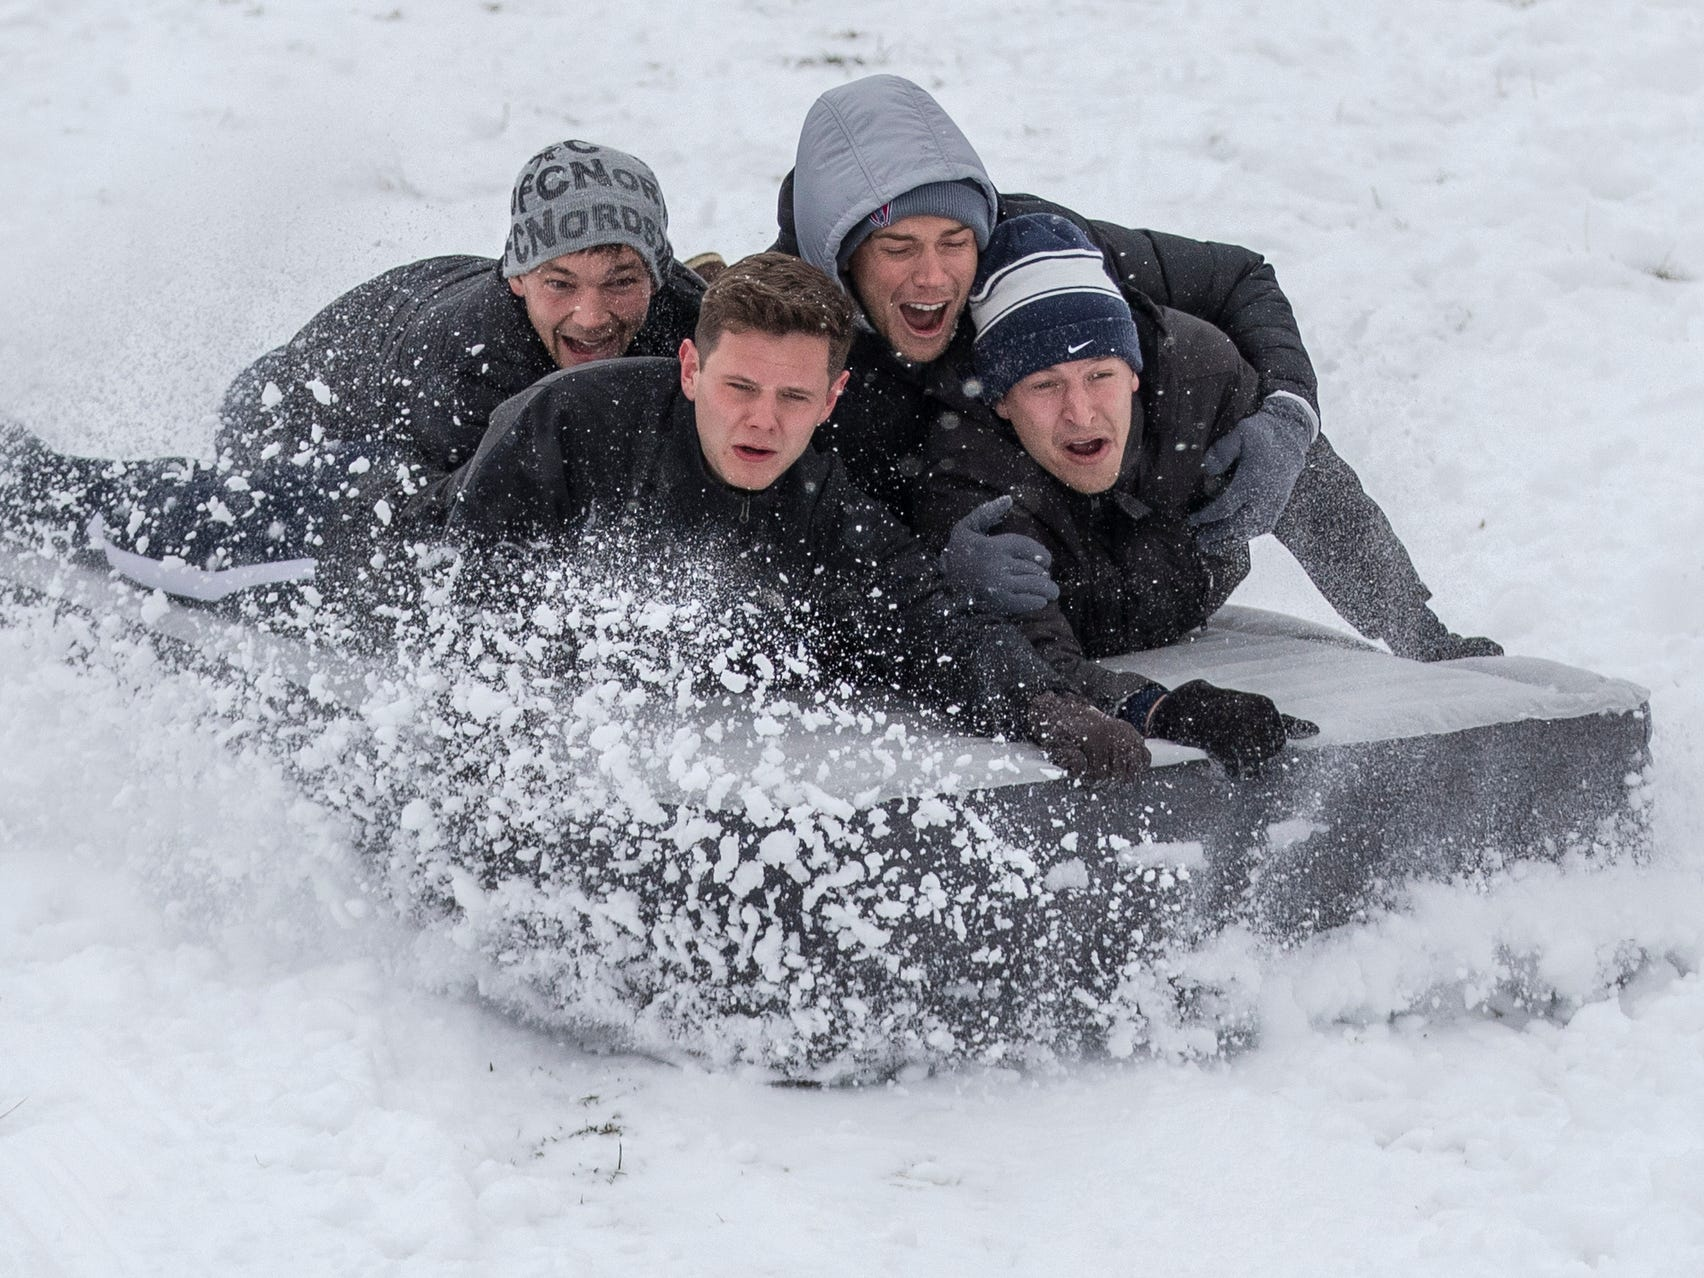 This group of four former Butler University students slide on an inflatable mattress at Butler University on a day where 5-7 inches of snow is expected to fall in Central Indiana, Indianapolis, Saturday, Jan. 12, 2019.